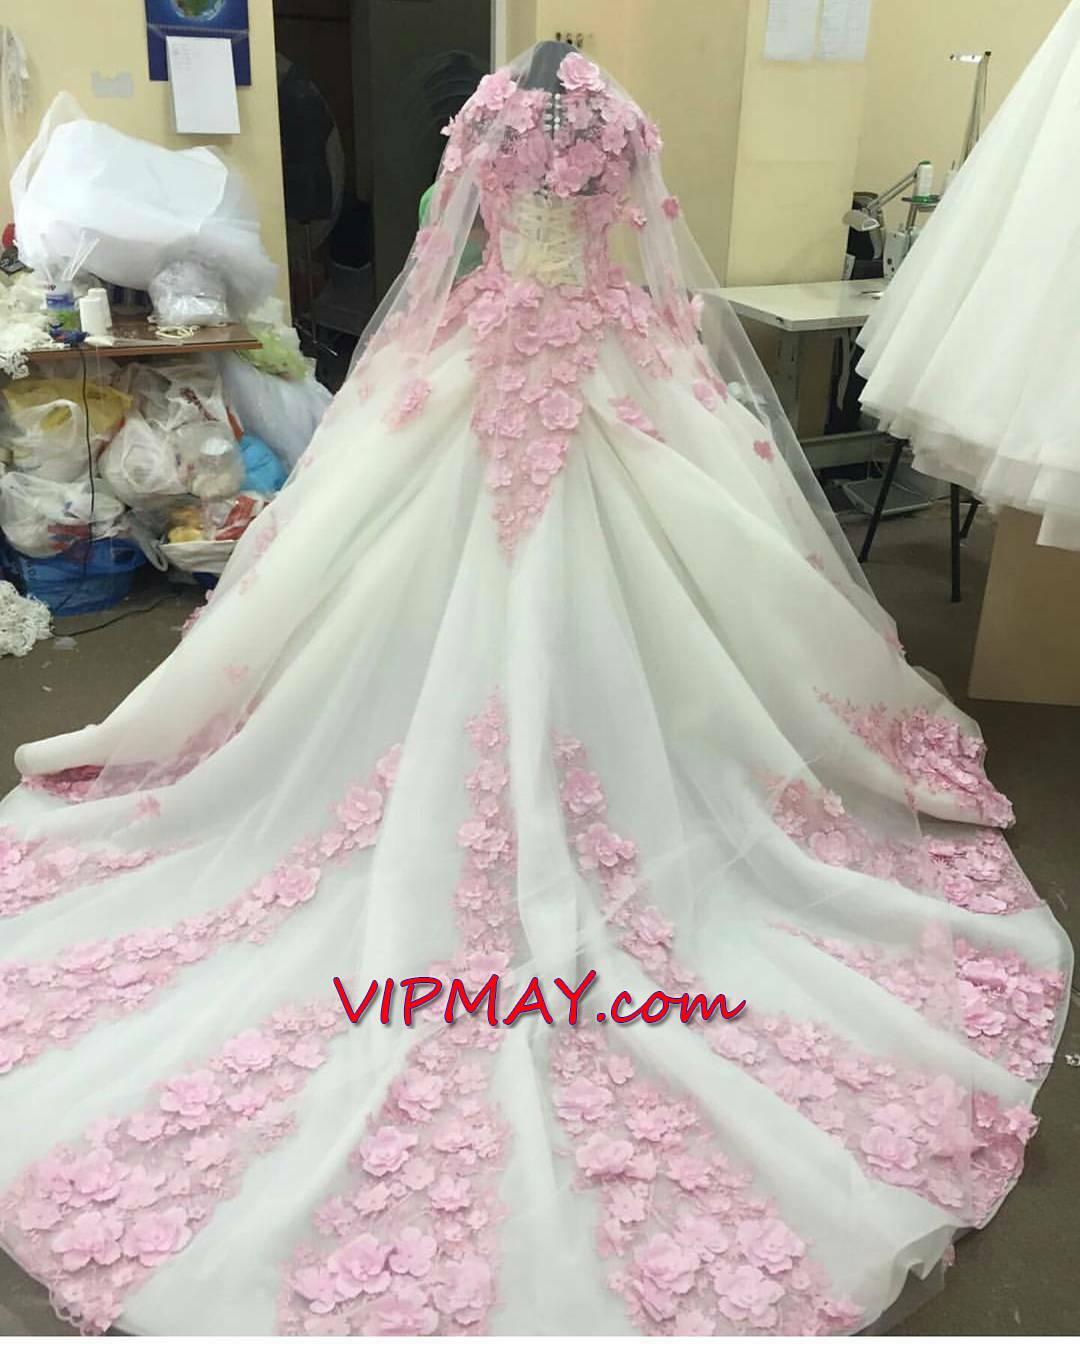 custom design quinceanera dress,long sleeves illusion quinceanera dress,pretty quinceanera dress long sleeve,white and pink quinceanera dress,quinceanera dress with 3d flowers,sheer neckline quinceanera dress,quinceanera dress with long trains,princess quinceanera dresses,